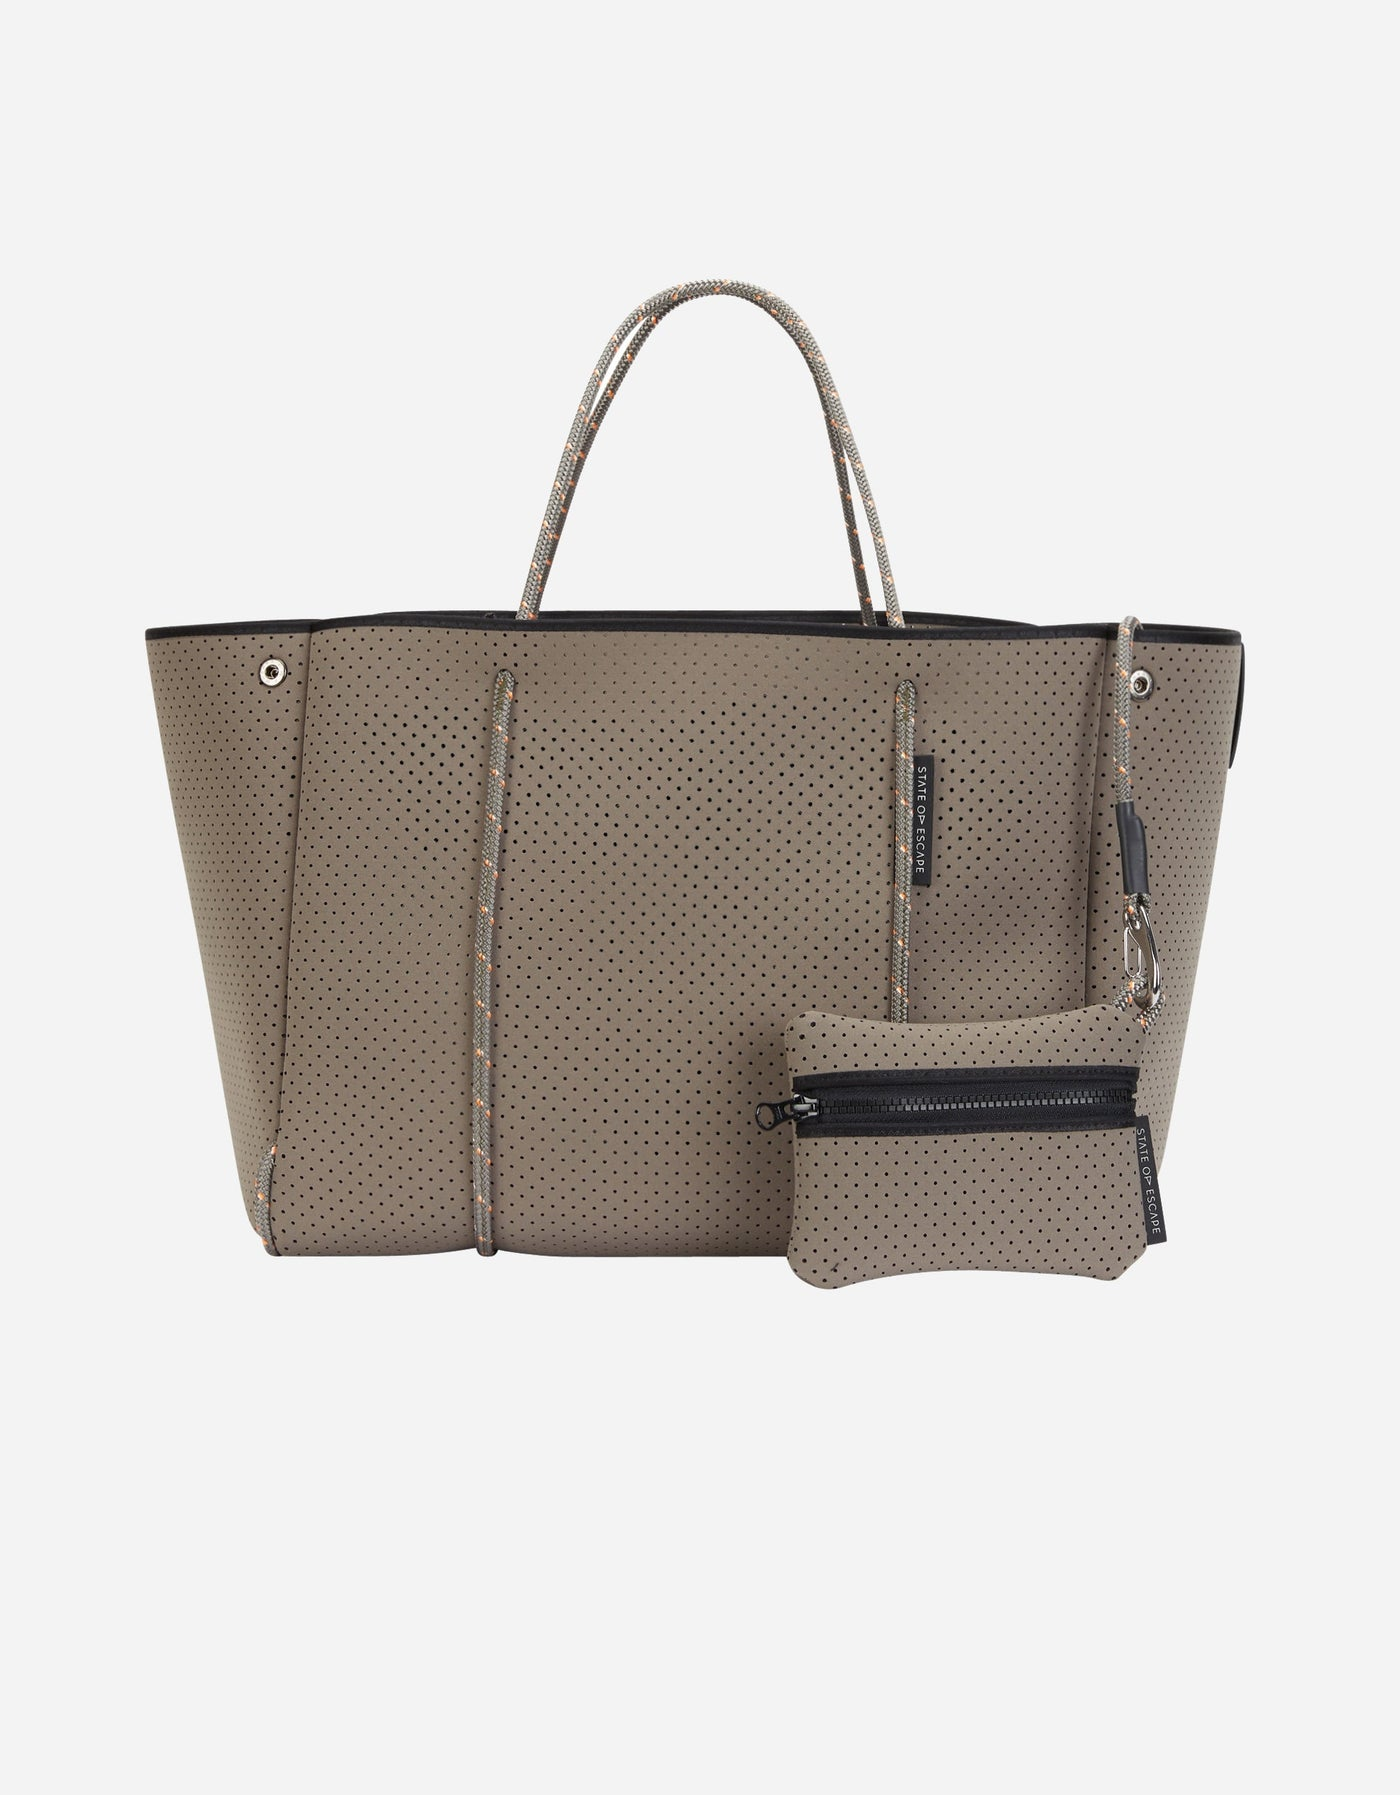 State of Escape x Olympia escape tote in safari